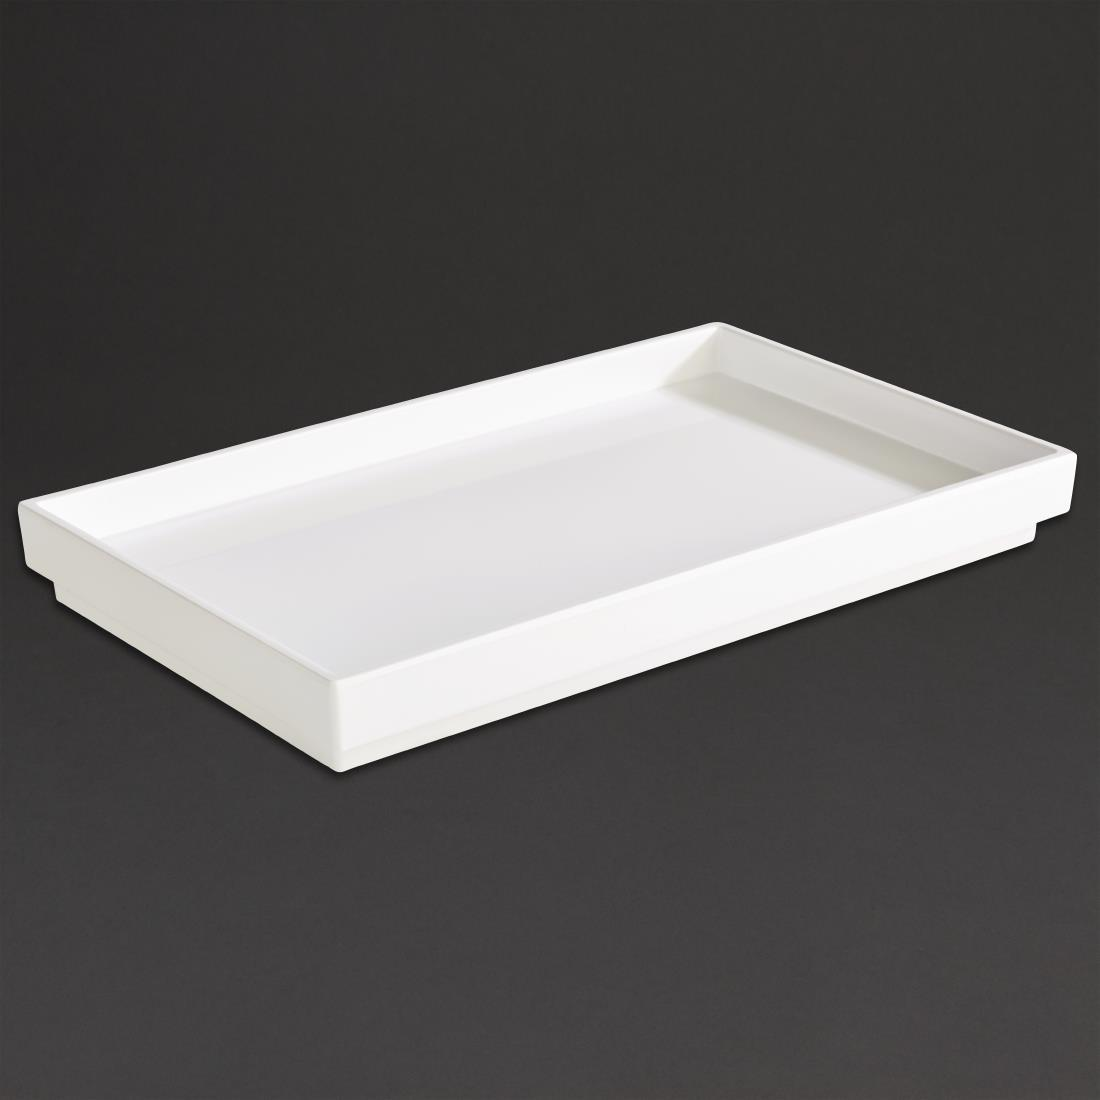 DT771 - APS Asia+  White Tray GN 1/4 - Each - DT771